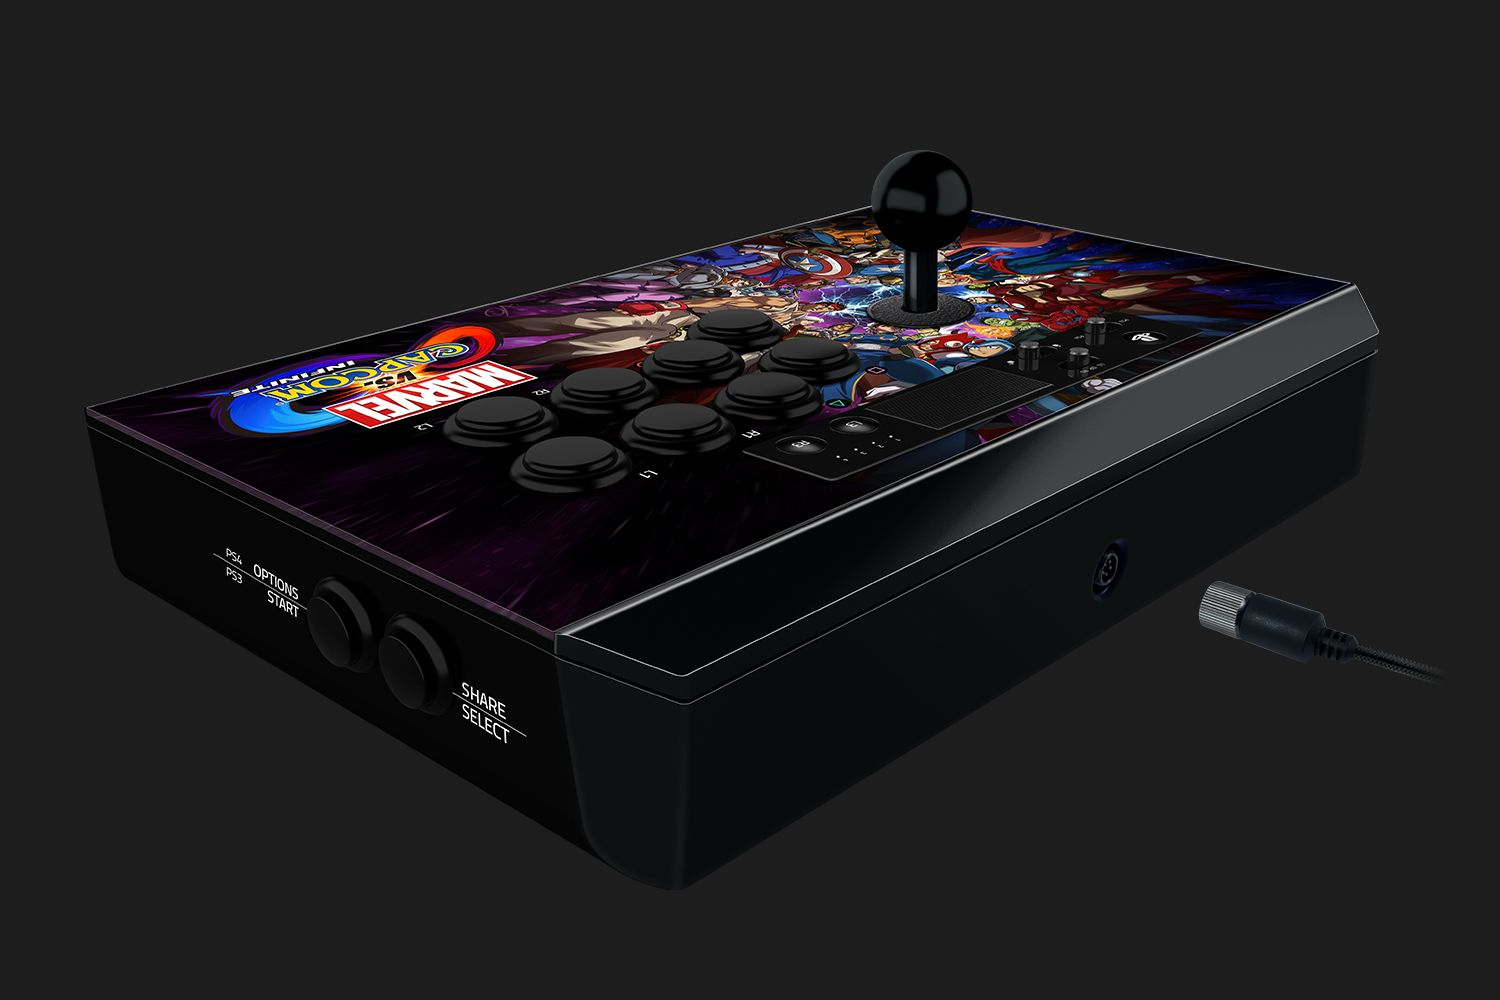 The Razer Panthera, MvCI edition, visible with a lever on one side of the device top and eight buttons on the other.  The edge of the device has the start and select buttons, and switches are visible at the top for Playstation 3 or 4 compatibility modes, as well as switching between left stick, right stick, and directional pad inputs.